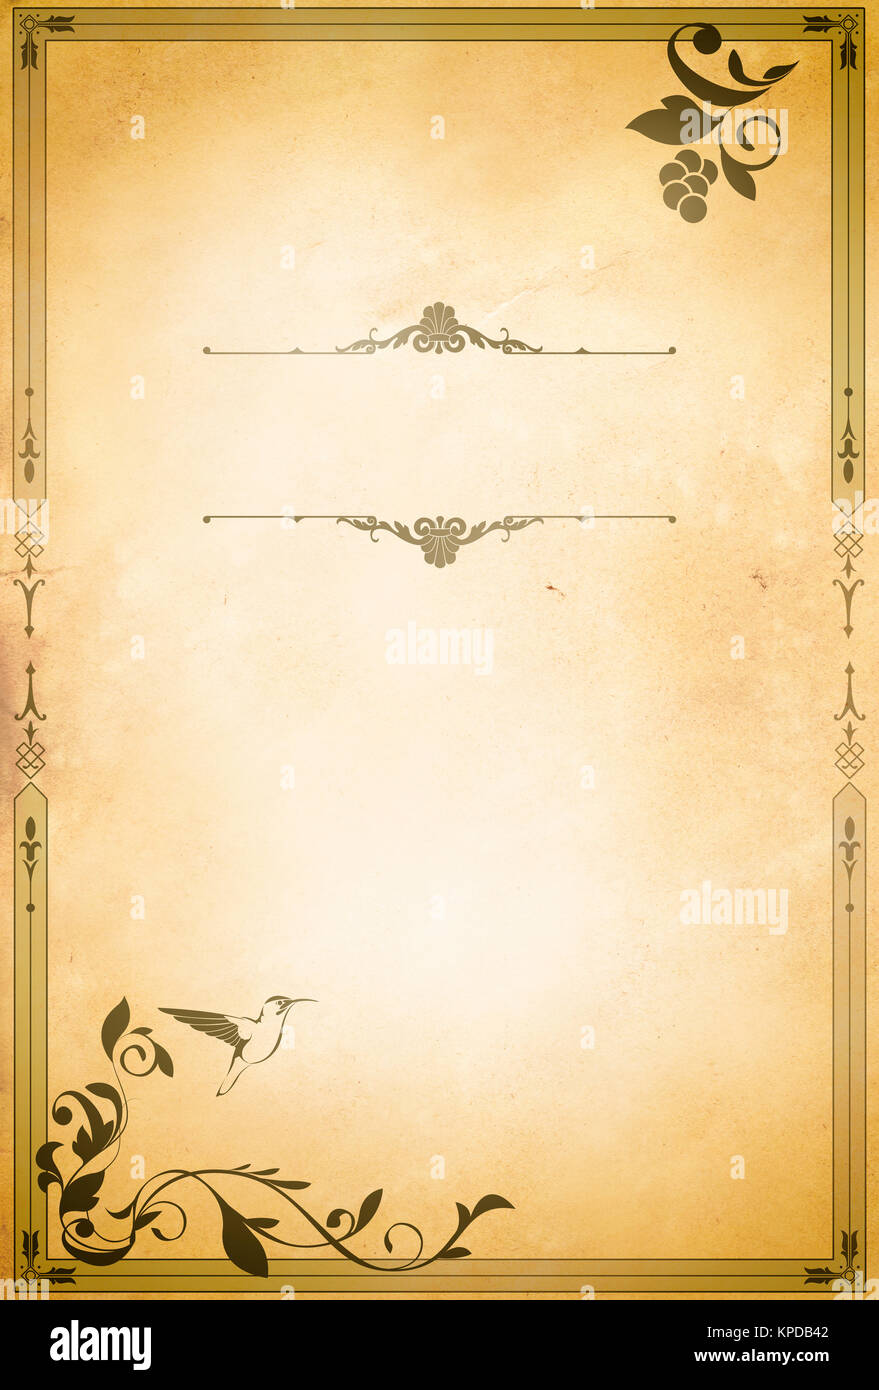 Vintage Paper Background With Decorative Border And Copy Space For Stock Photo 168709858